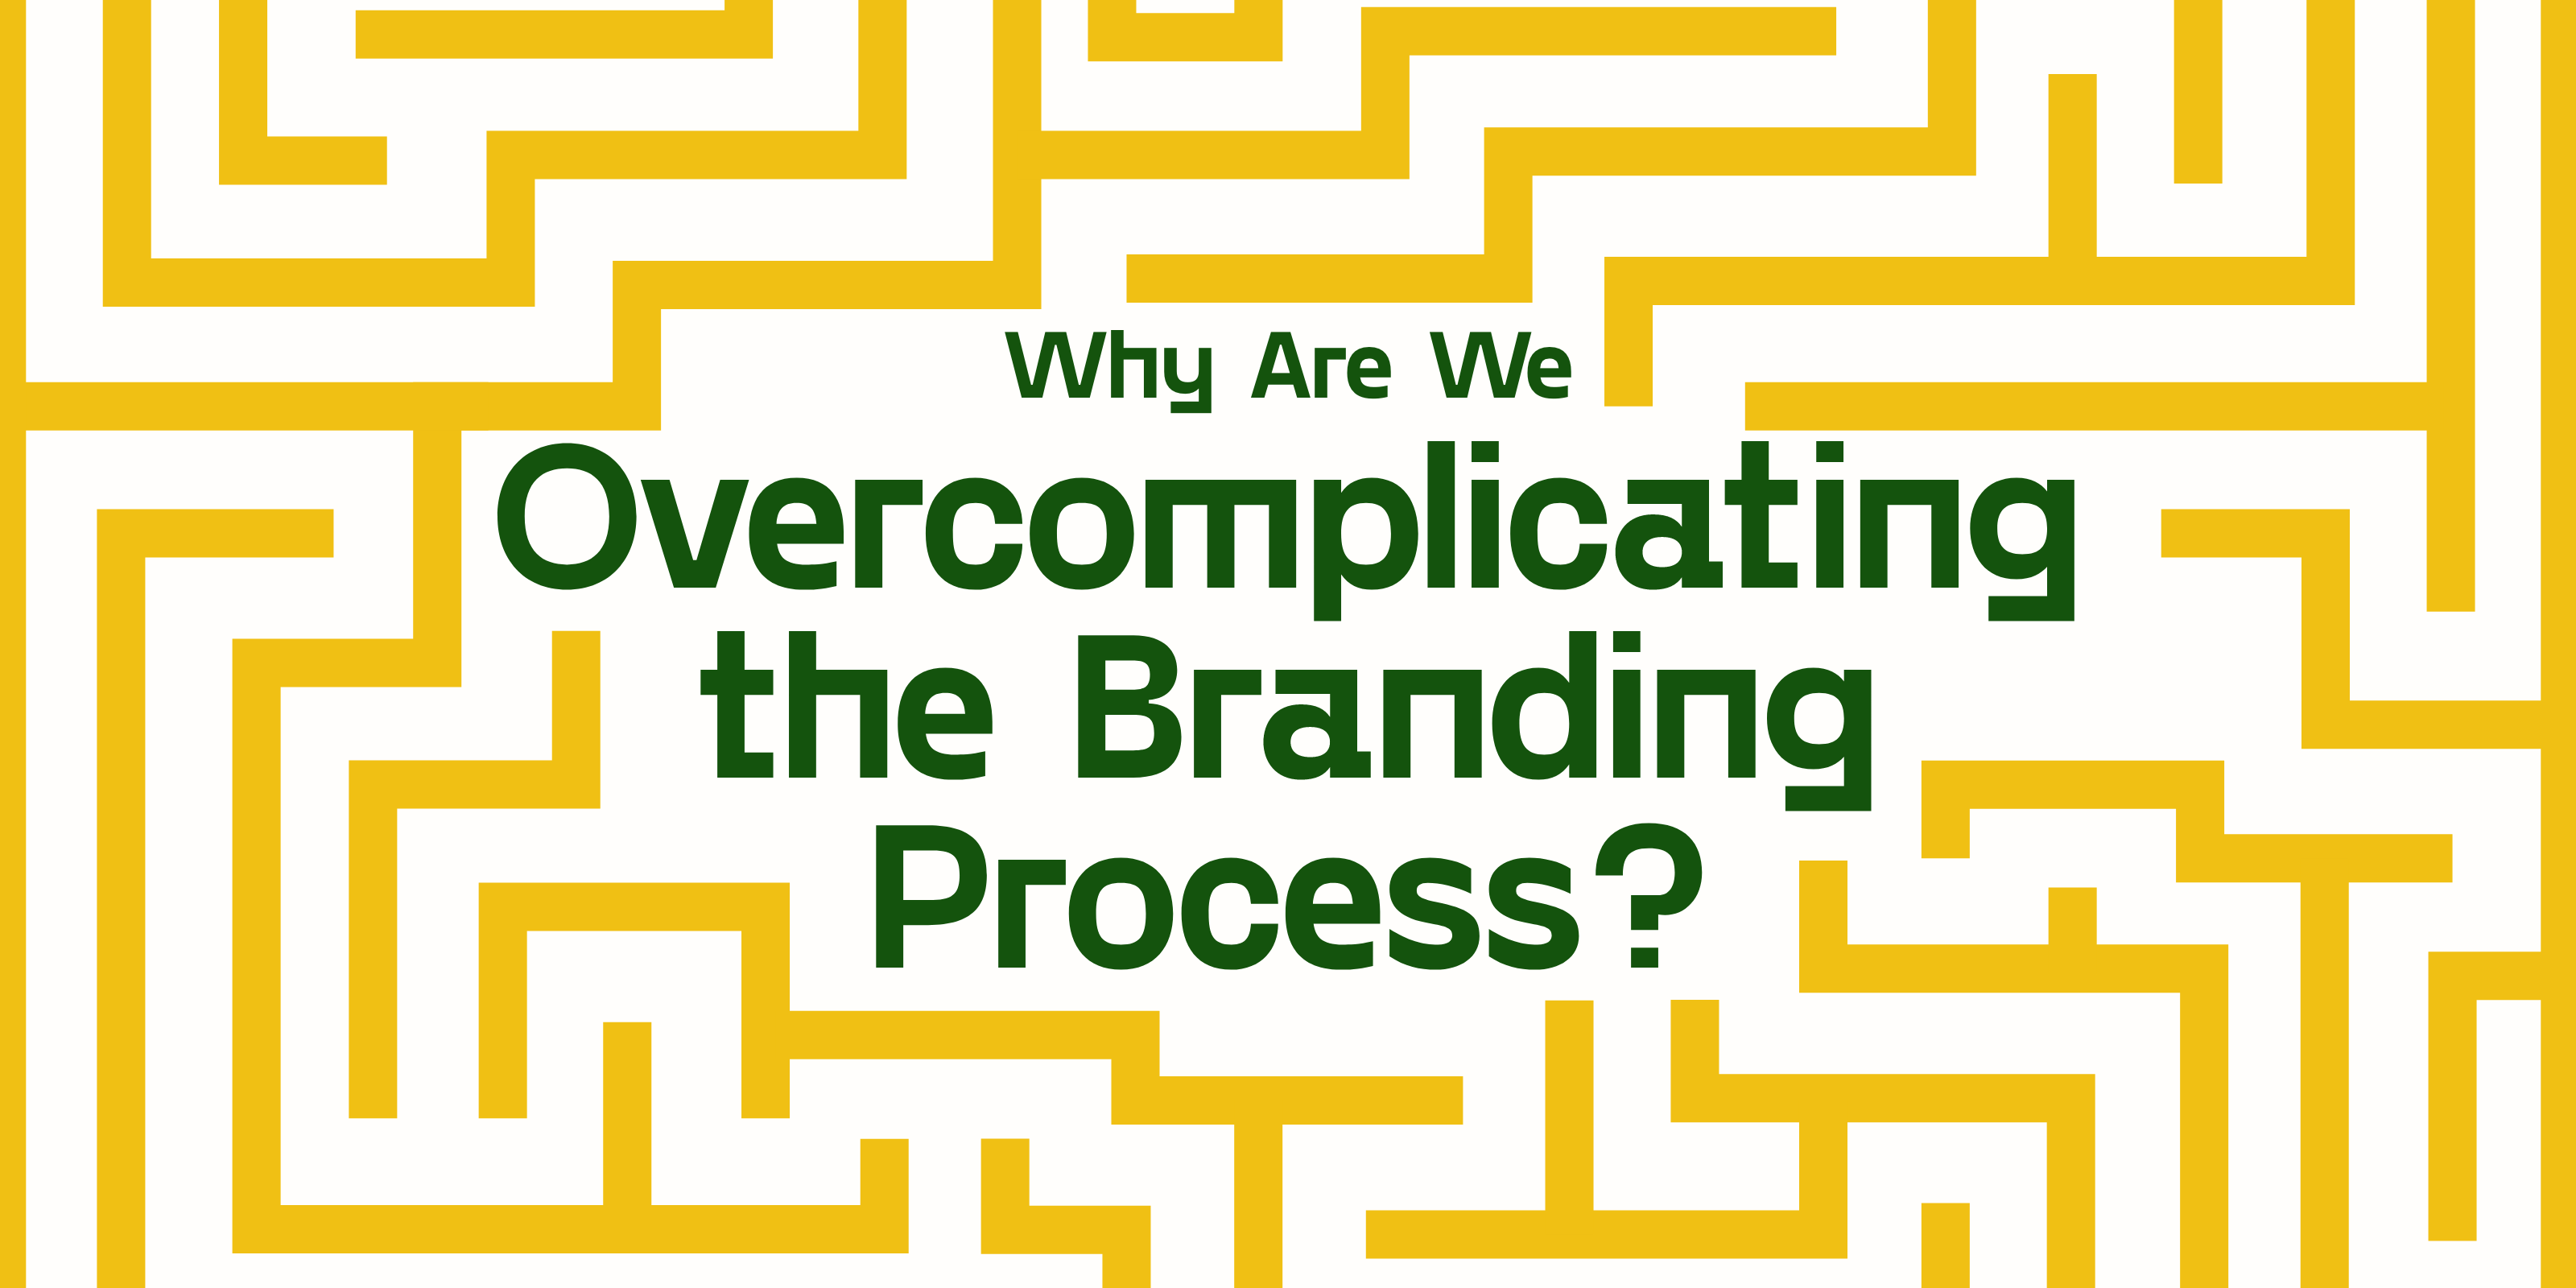 Why Are We Overcomplicating the Branding Process? — Header Image of a maze